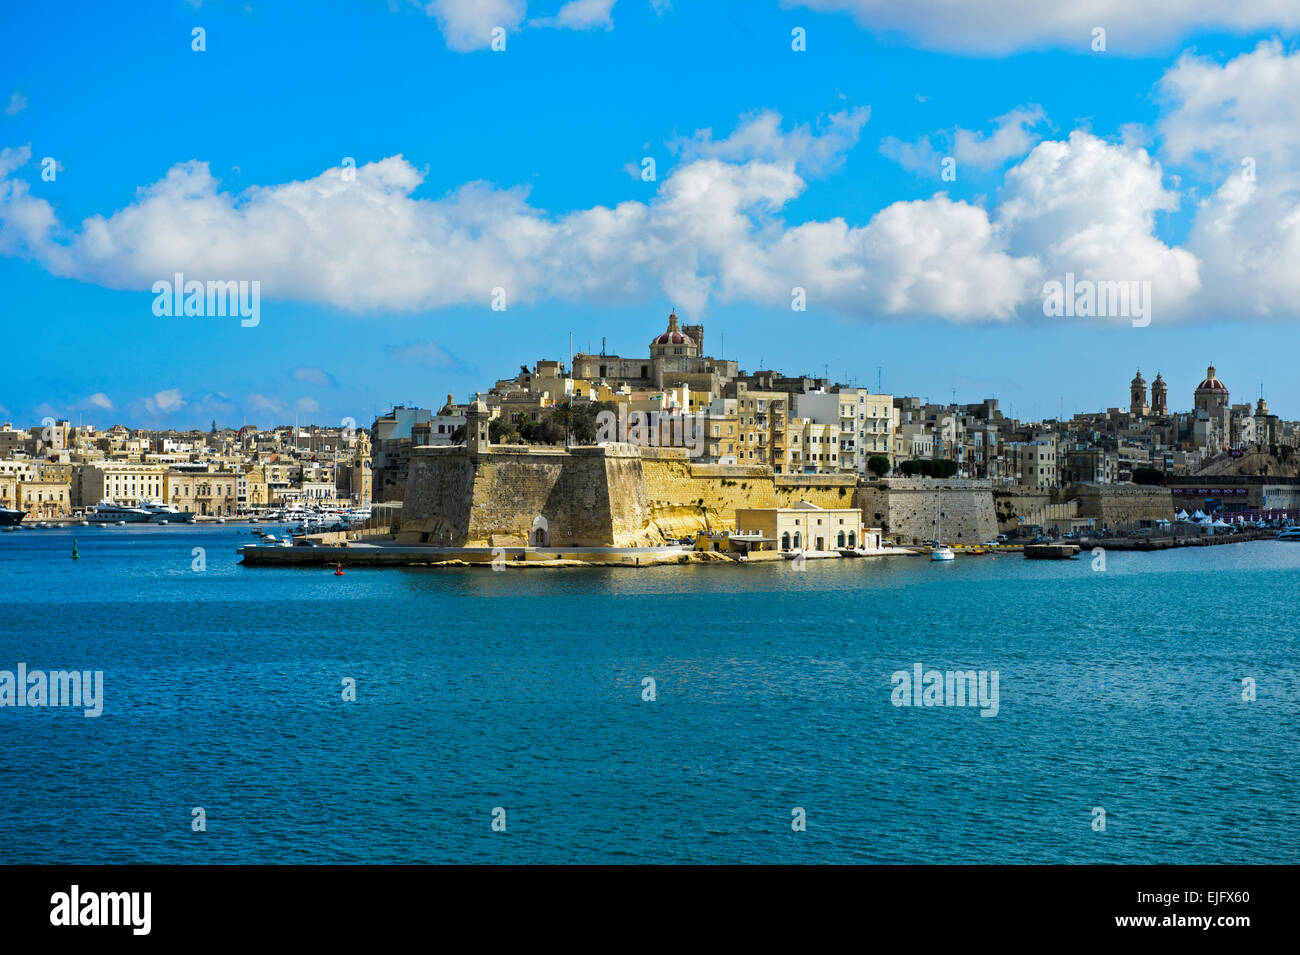 The fortified city of Senglea seen from the Grand Harbour of Valletta, Malta Stock Photo